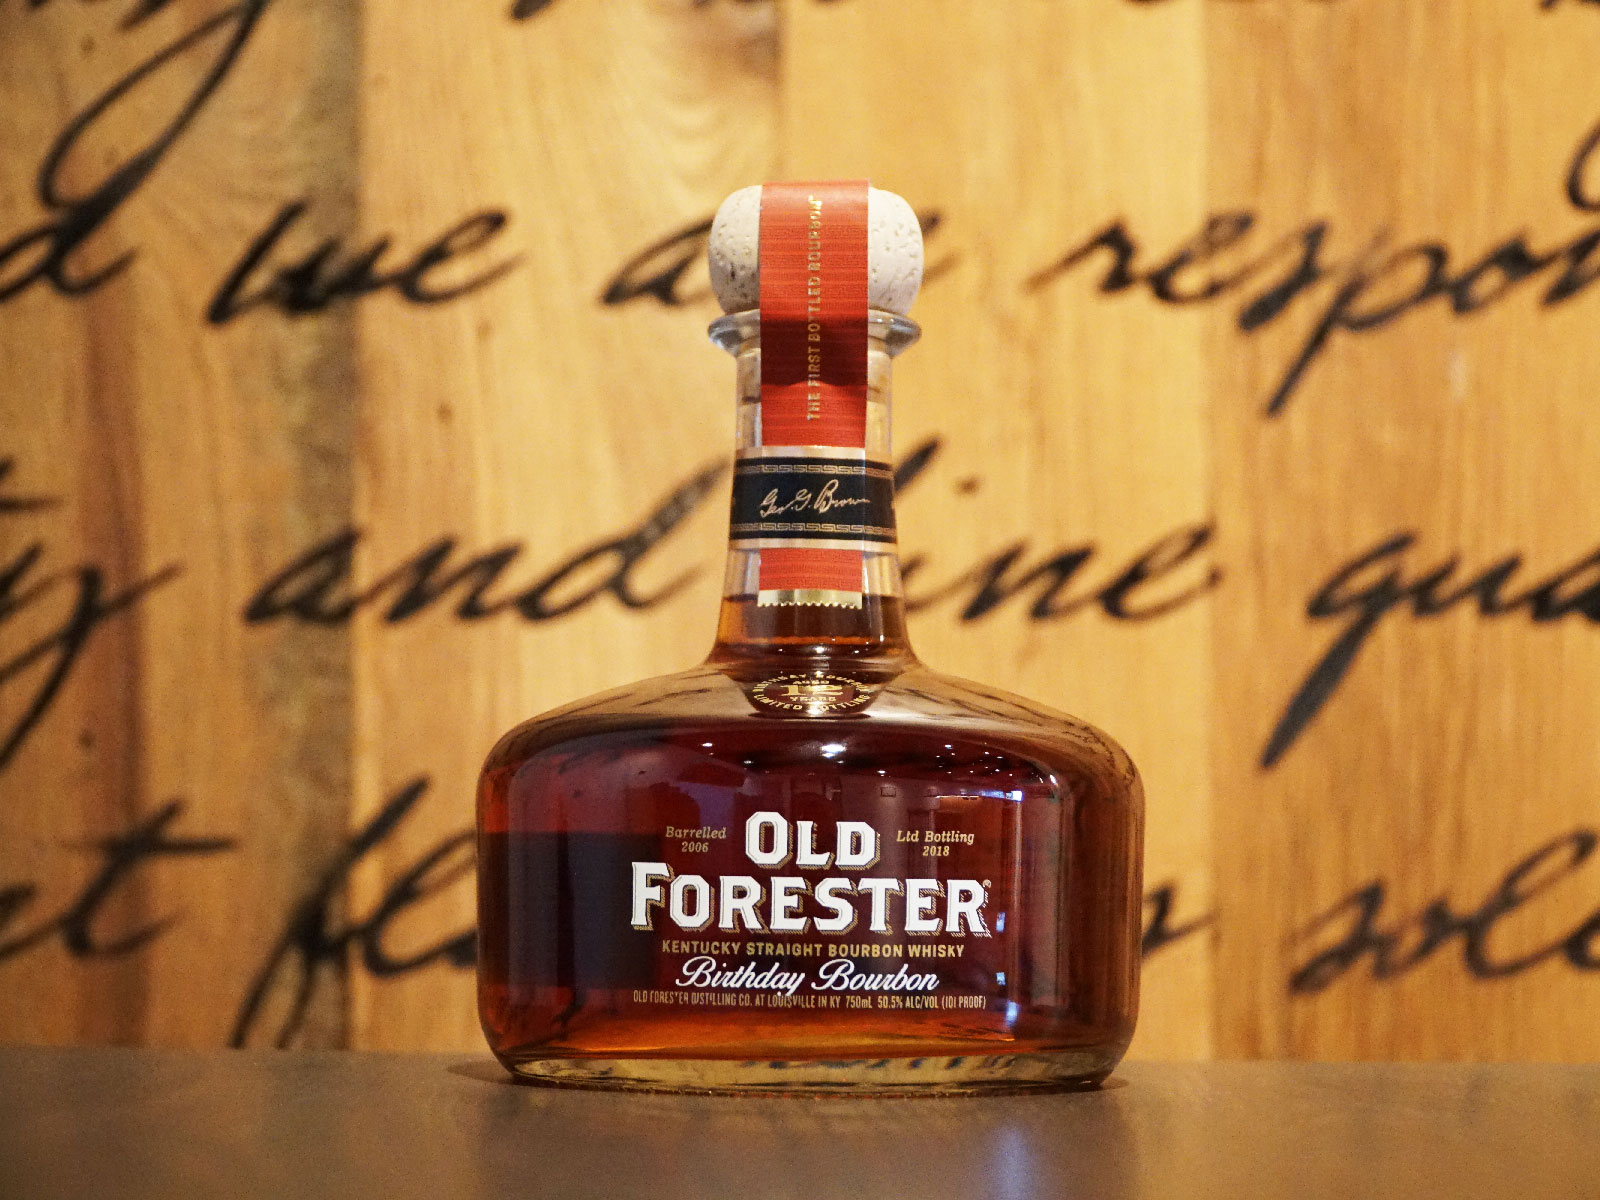 Old Forester Birthday Bourbon 2018